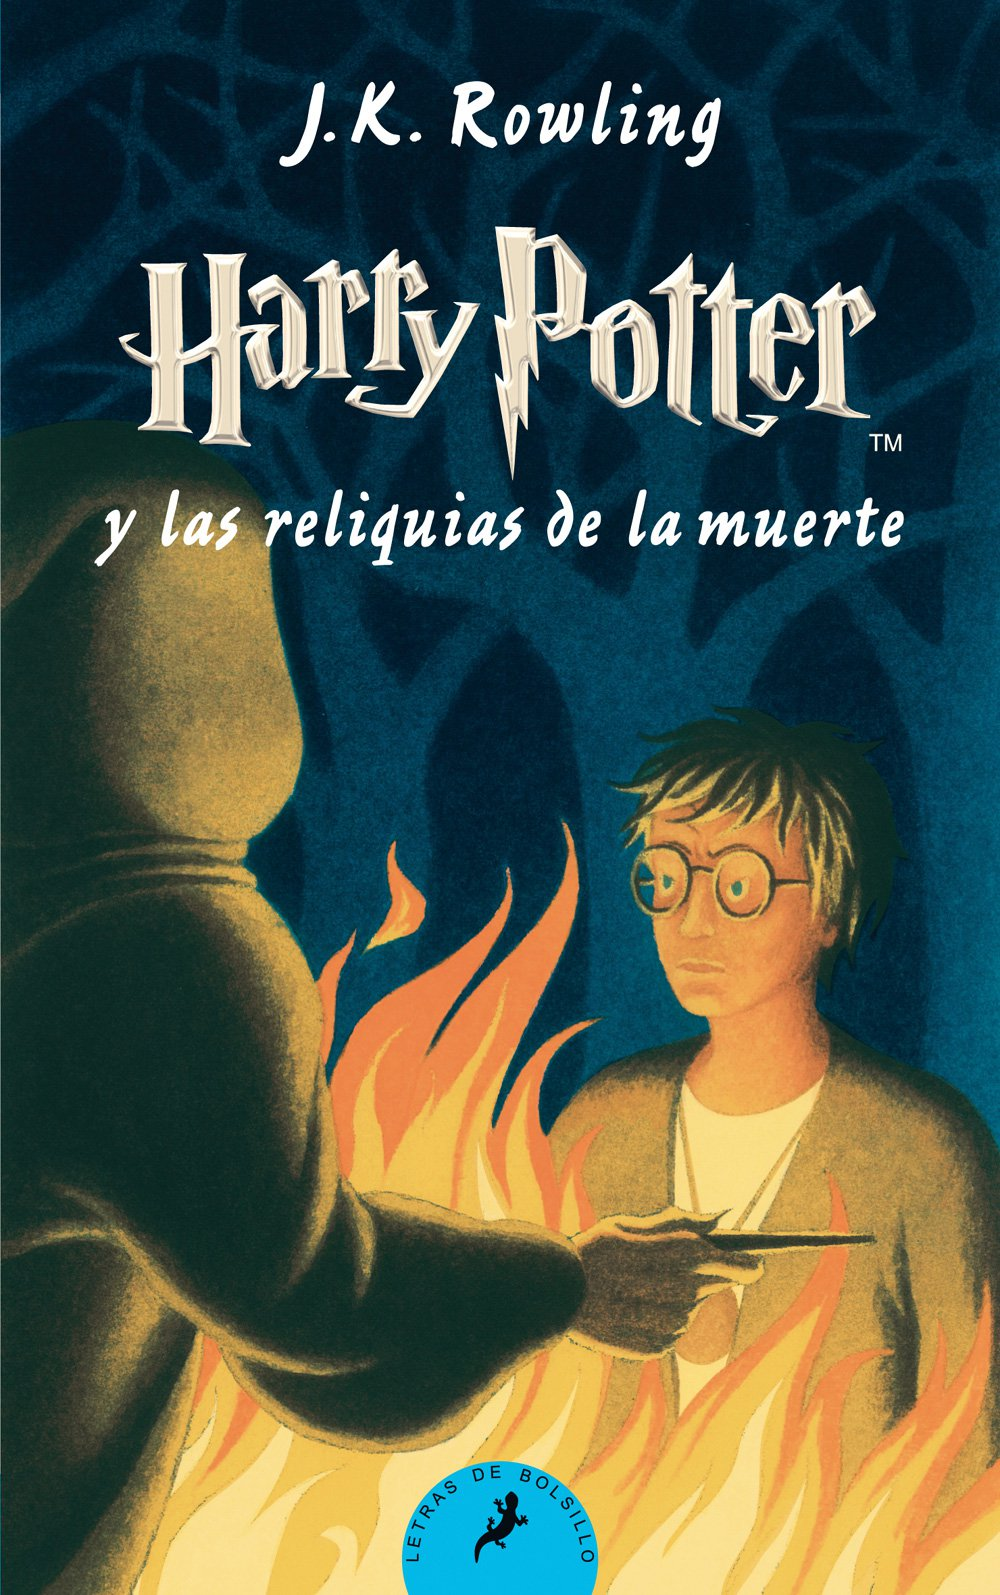 49. Harry Potter and the Deathly Hallows